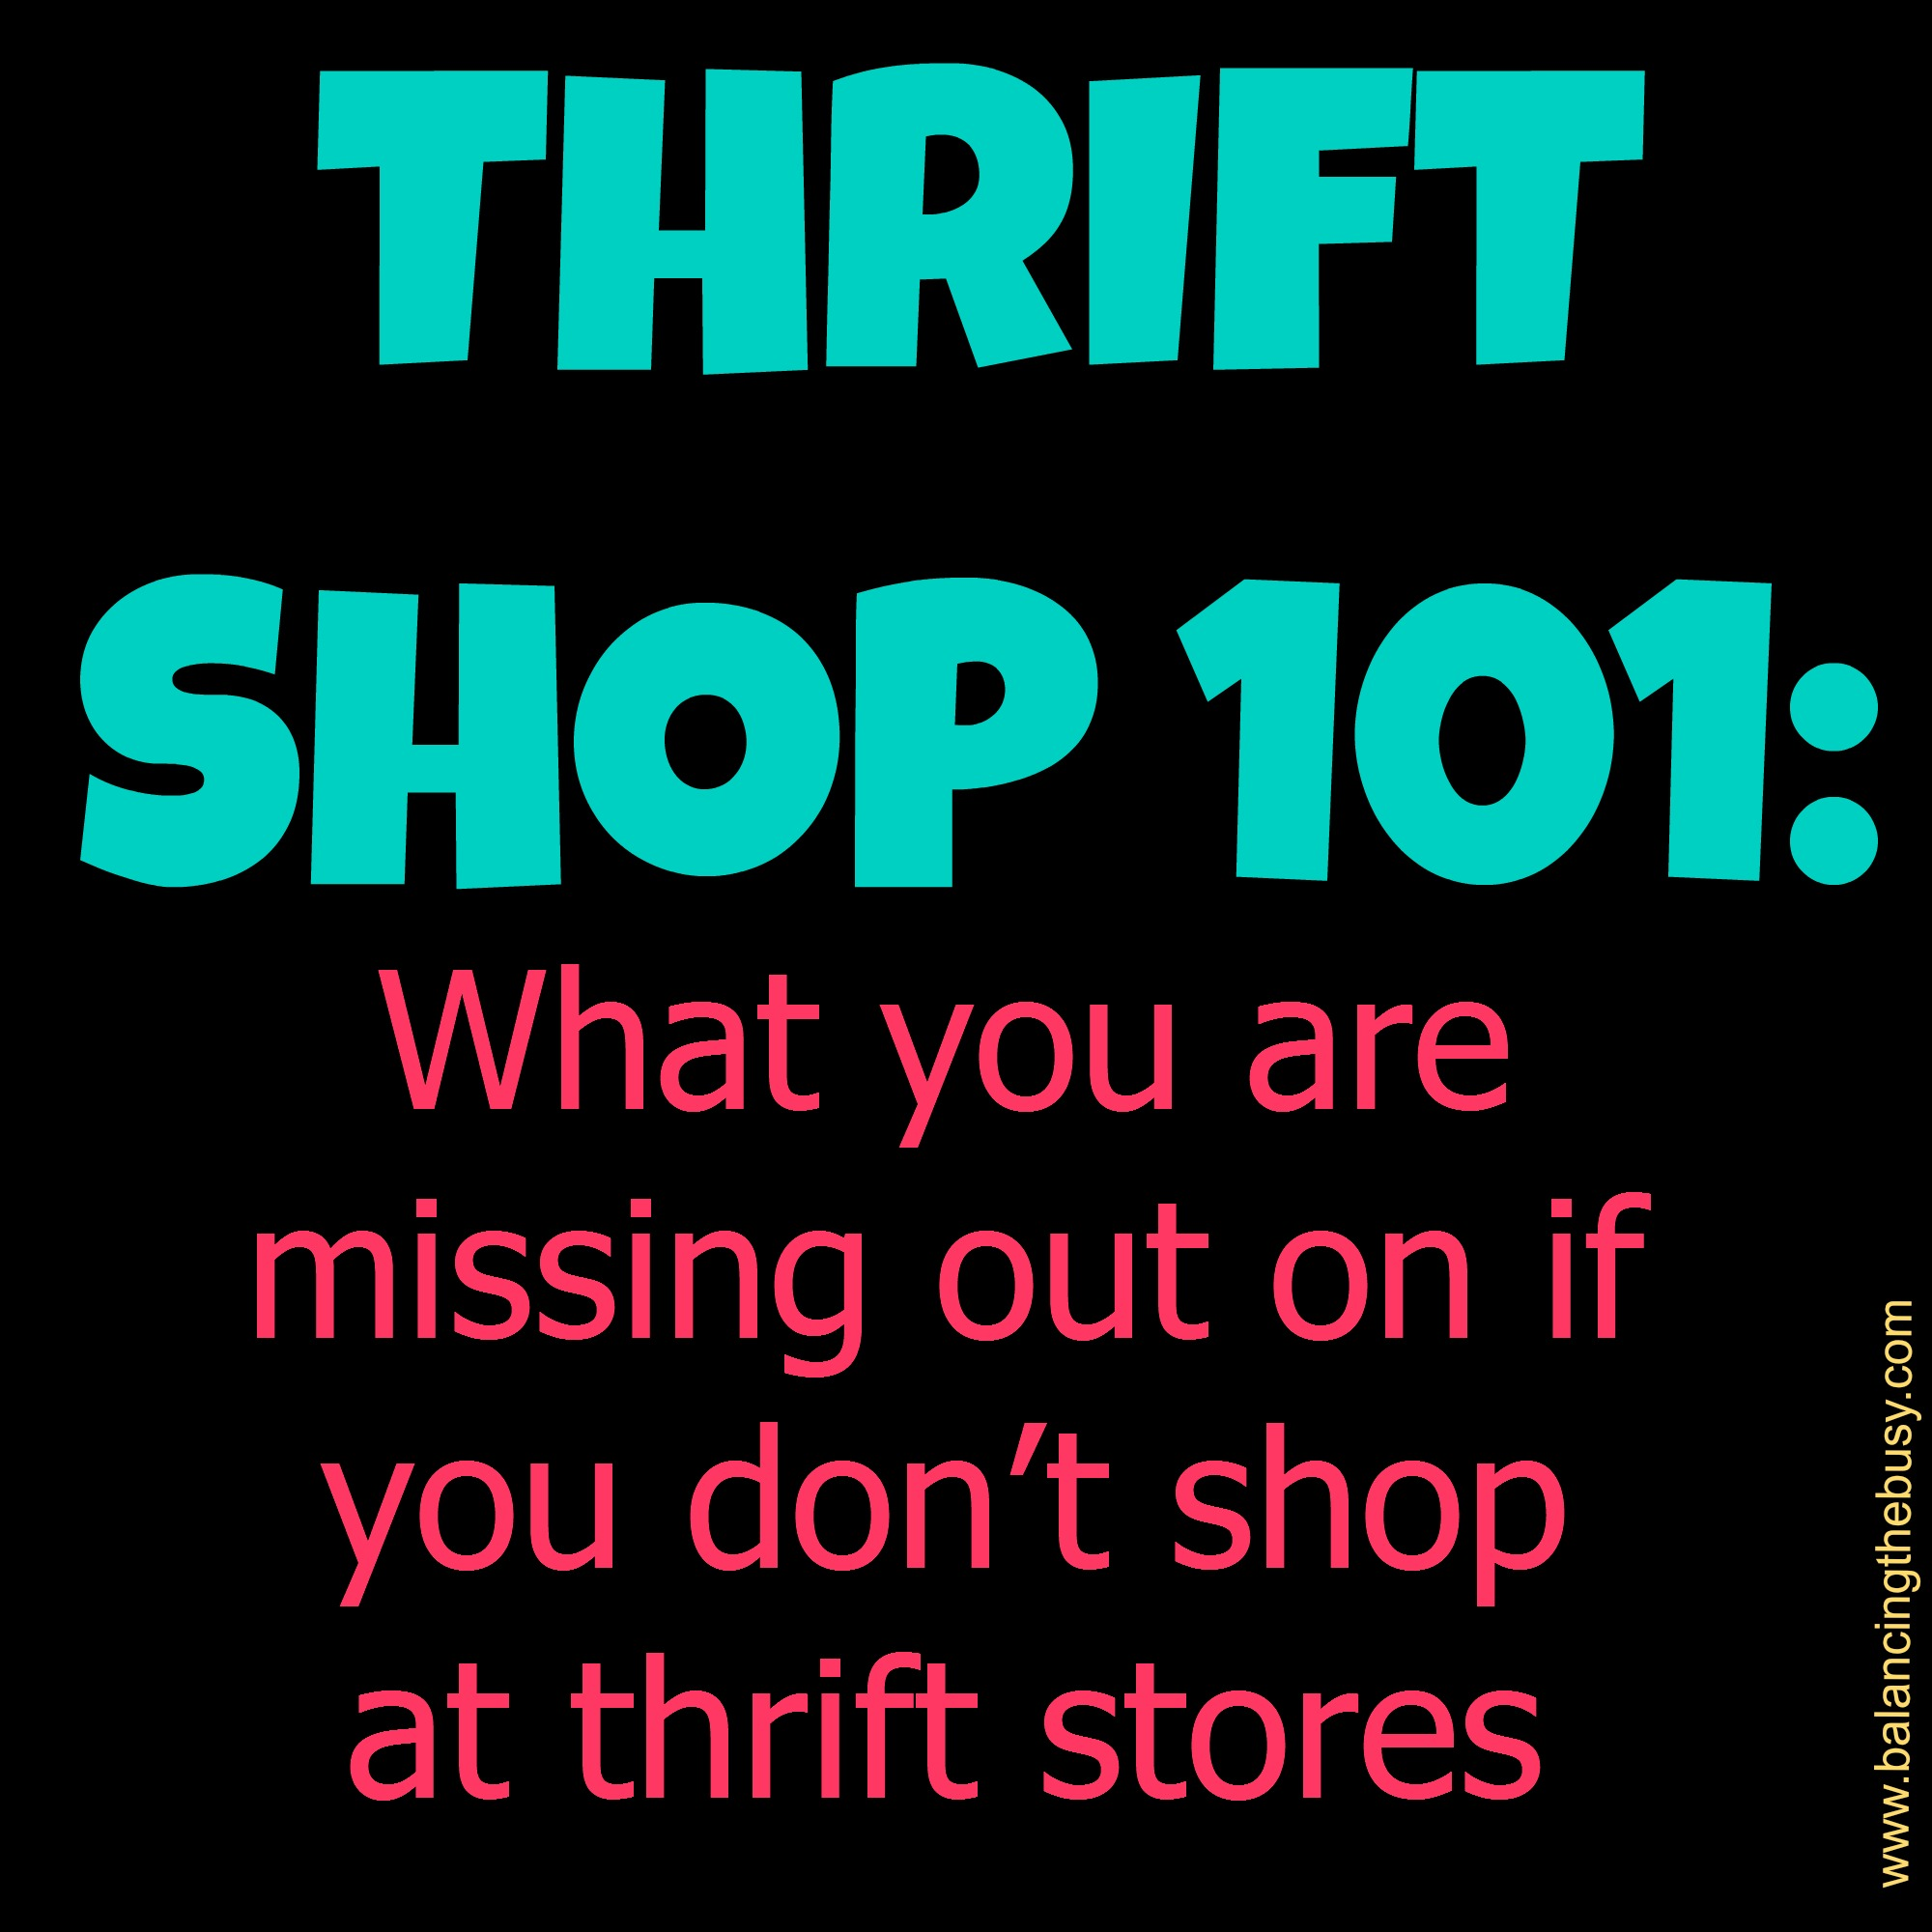 Do you get money for giving clothes to thrift stores